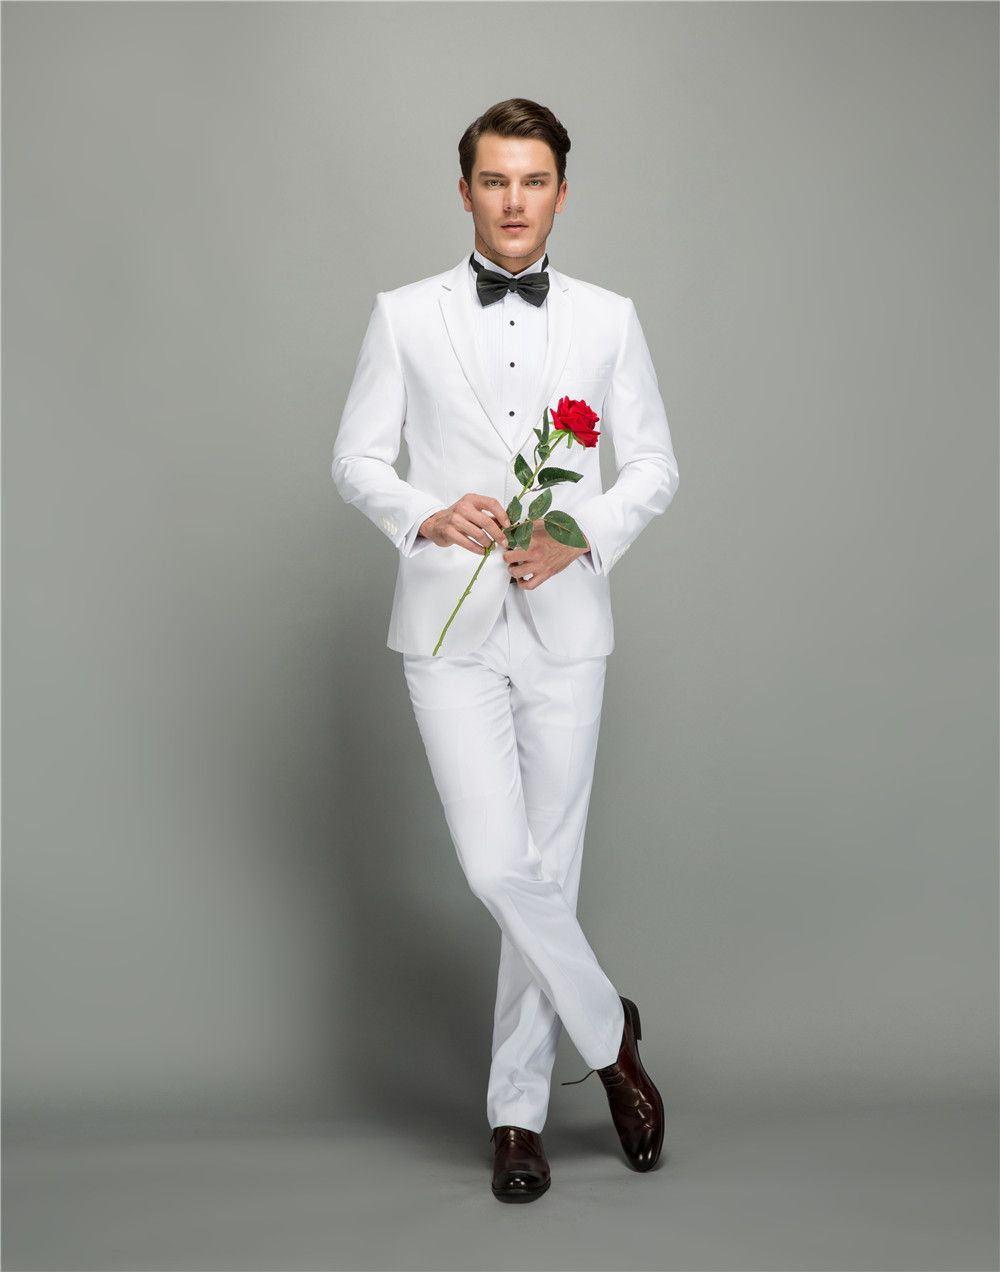 Wool solid white tailor made suits plus size casual wedding dress